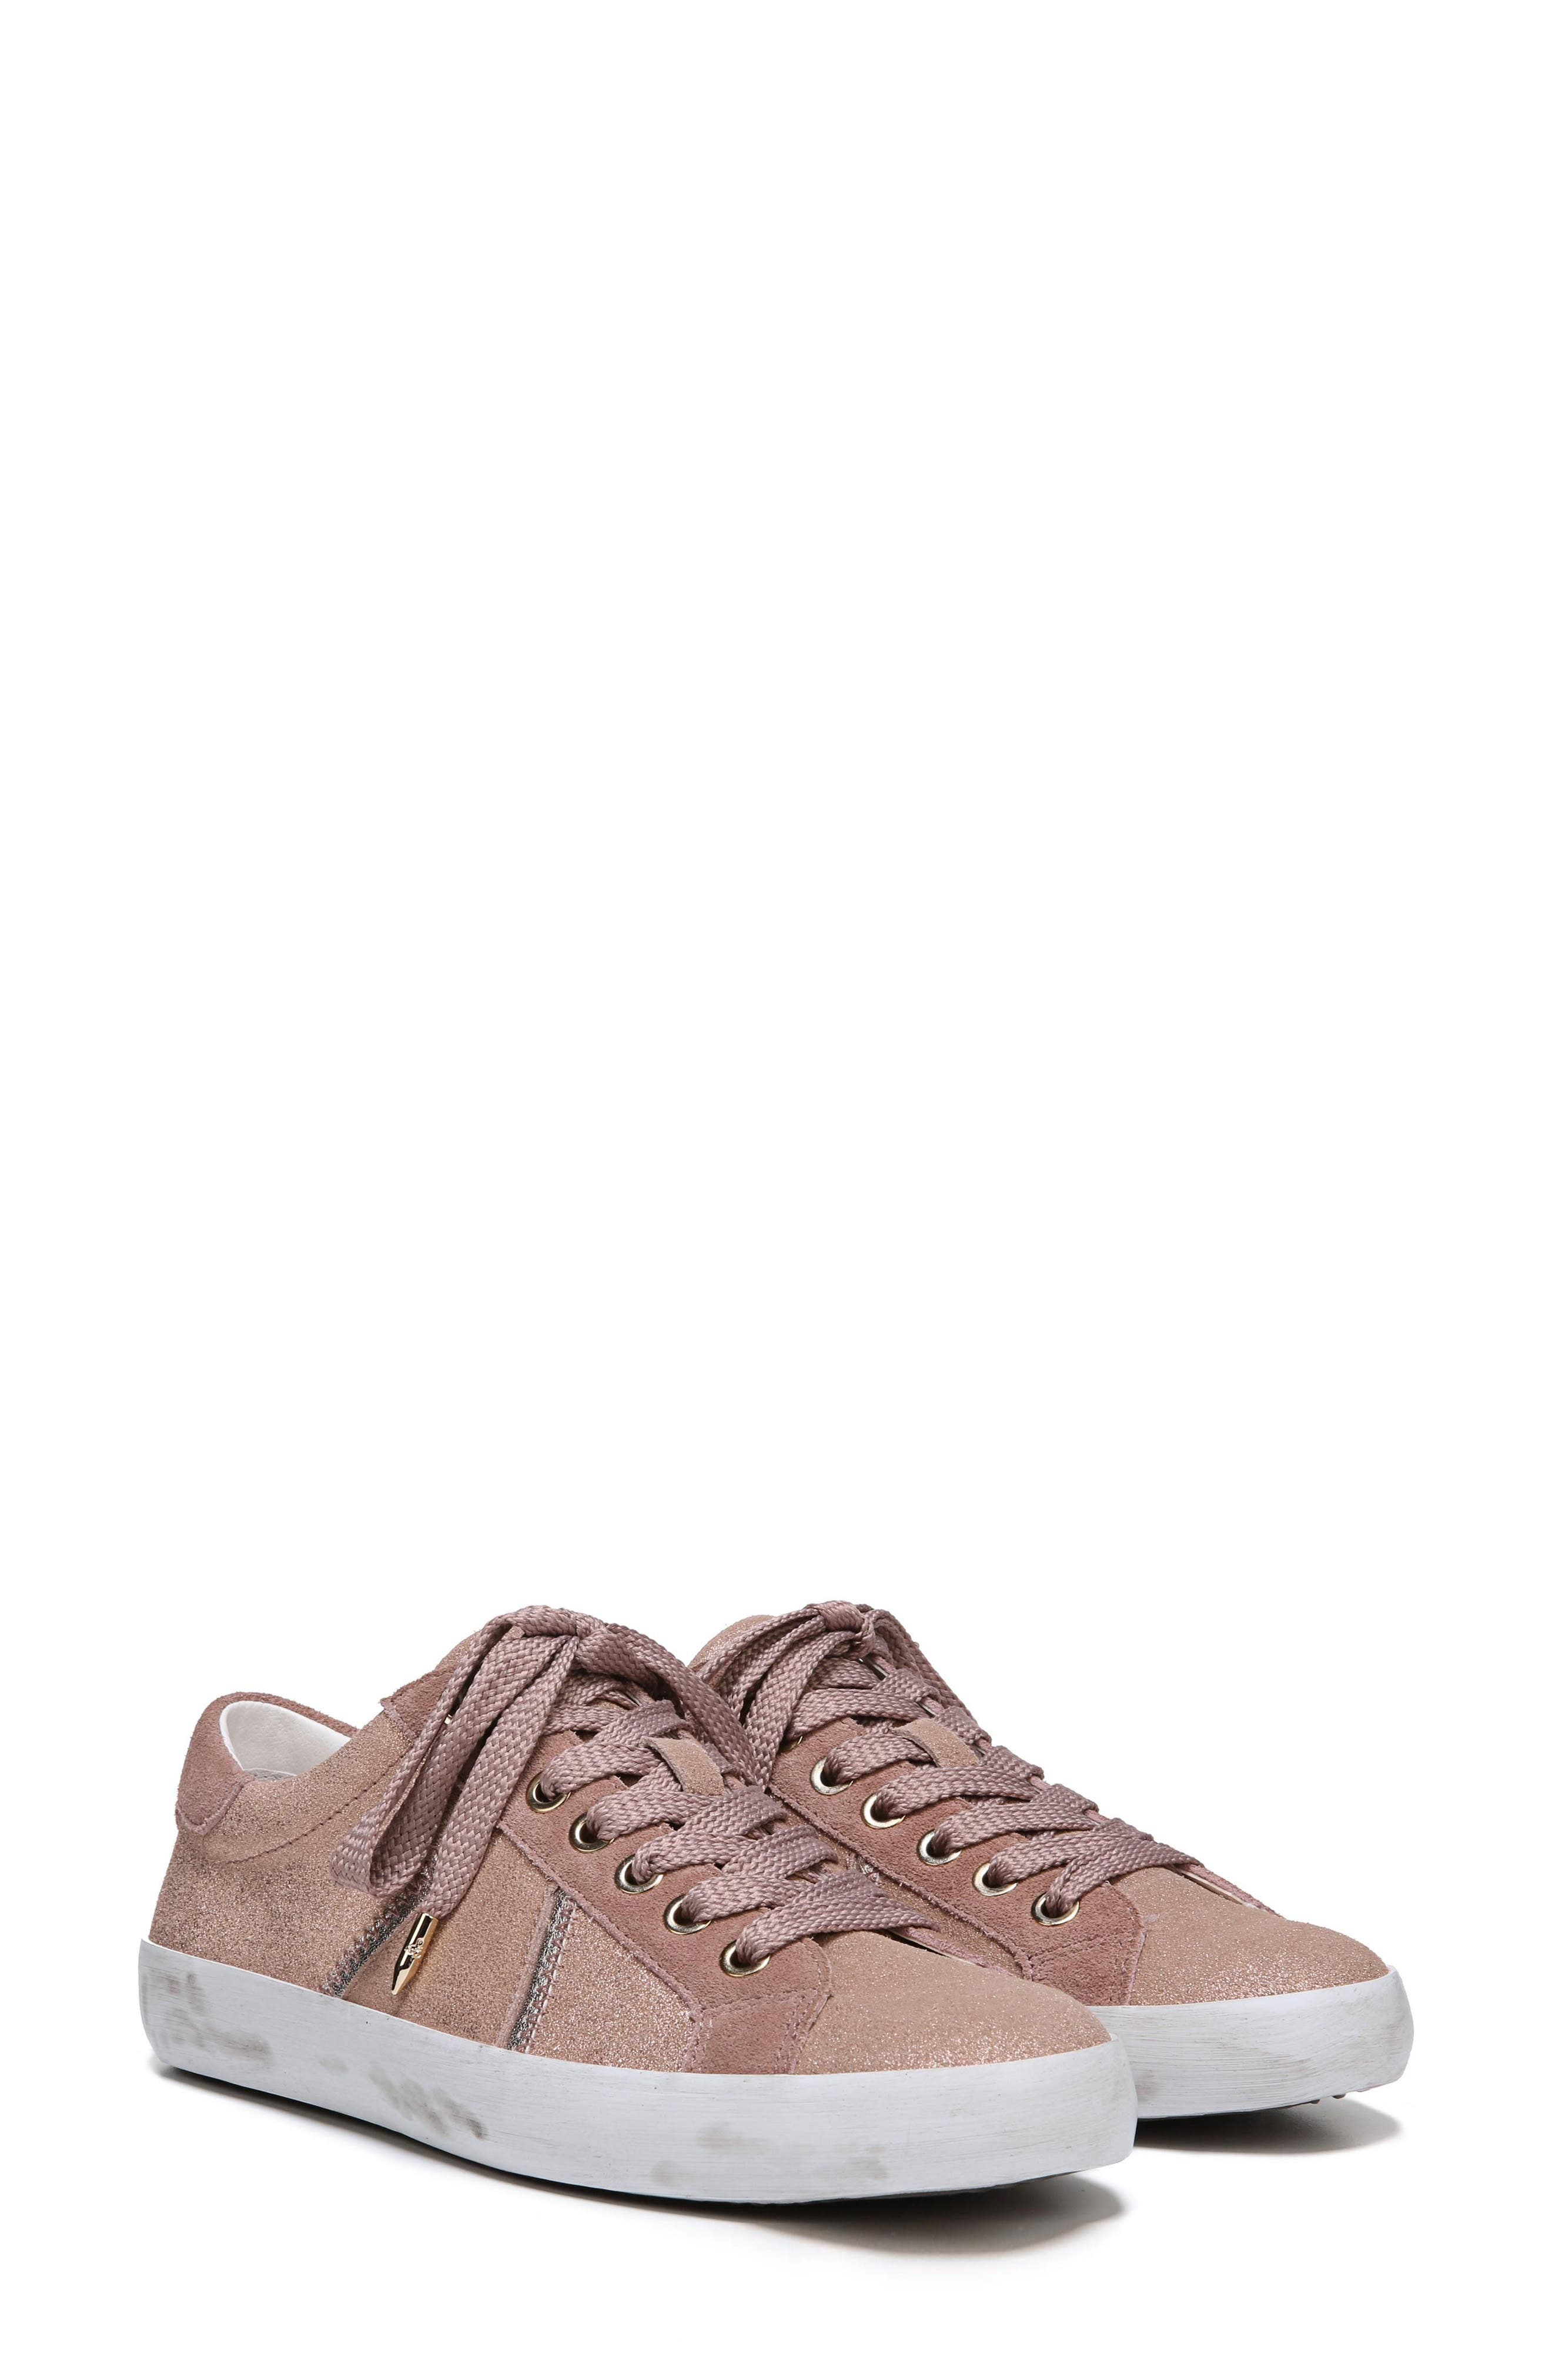 Baylee Sneaker,                             Alternate thumbnail 9, color,                             Blush Suede